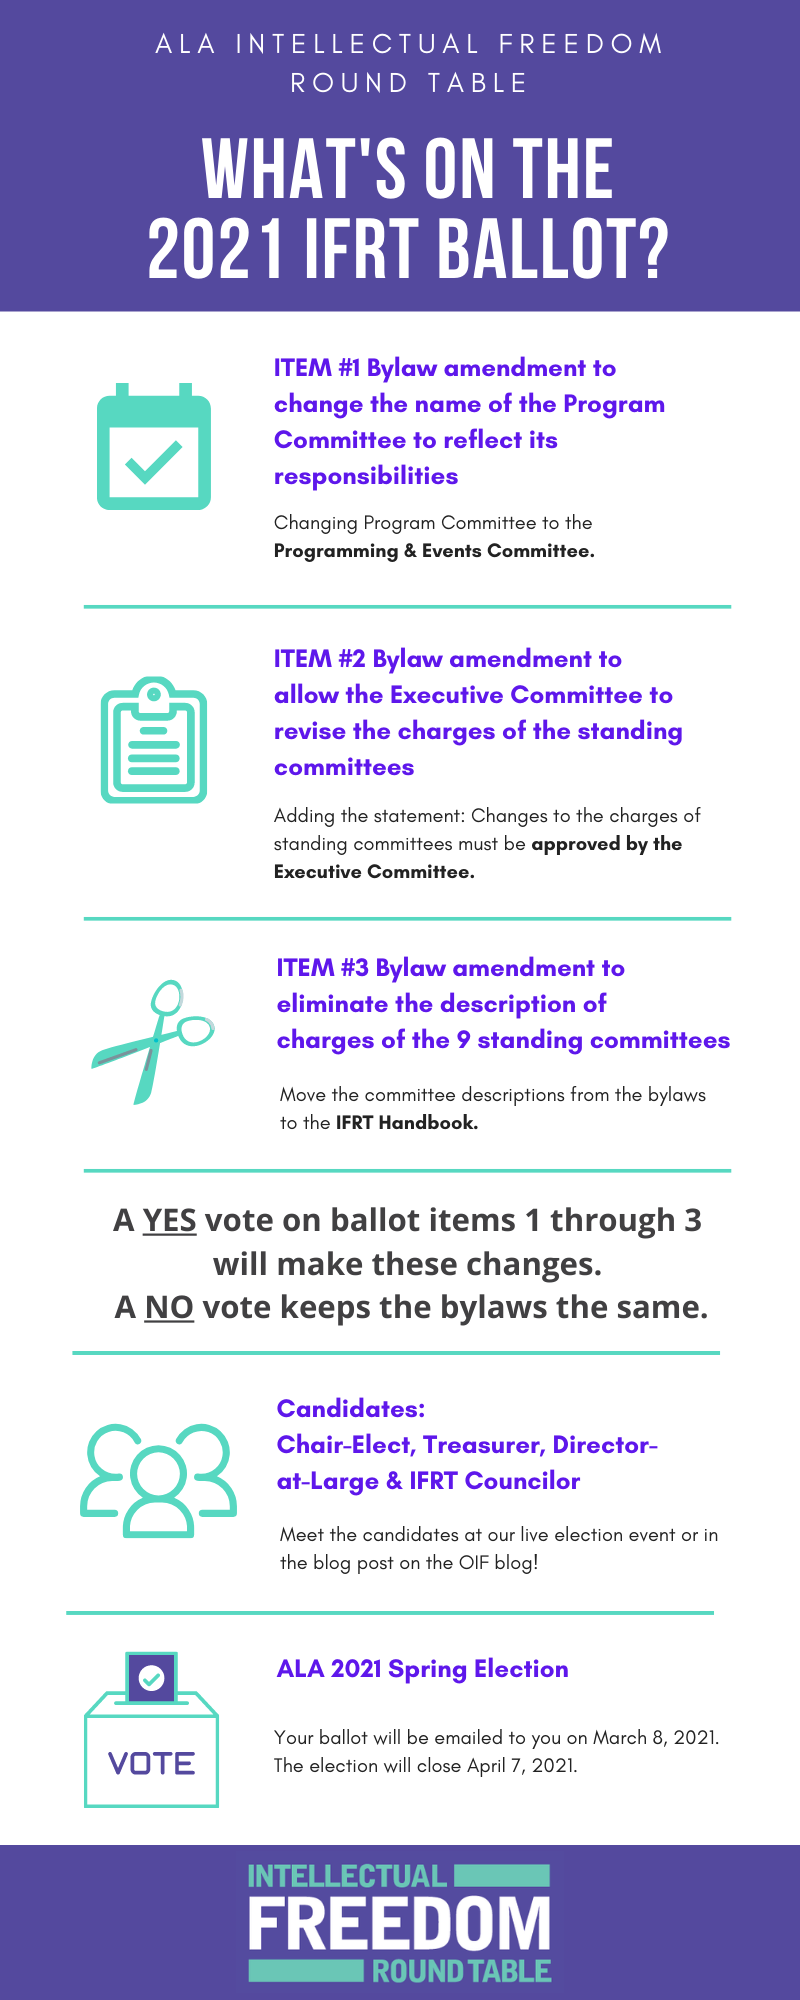 What's on the IFRT Ballot?